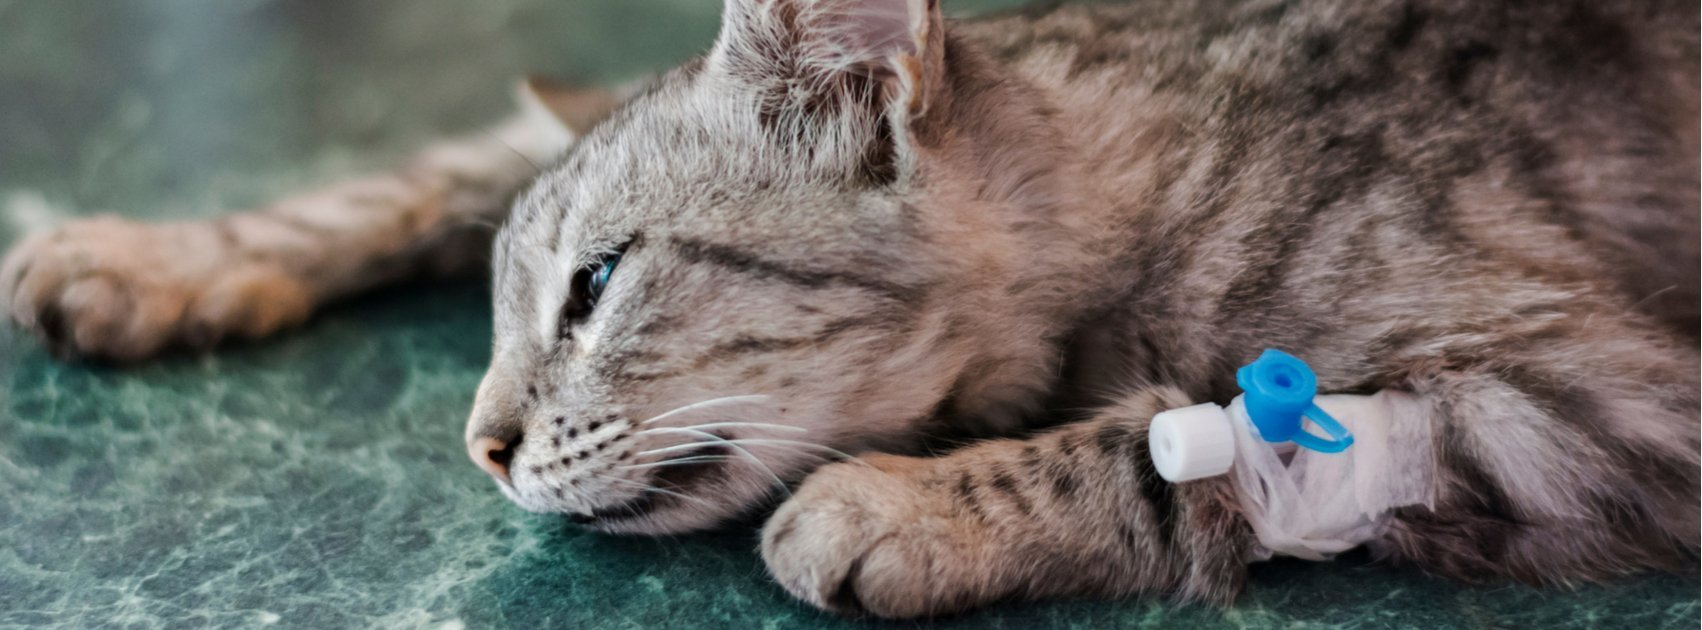 How anesthesia is used in feline surgery